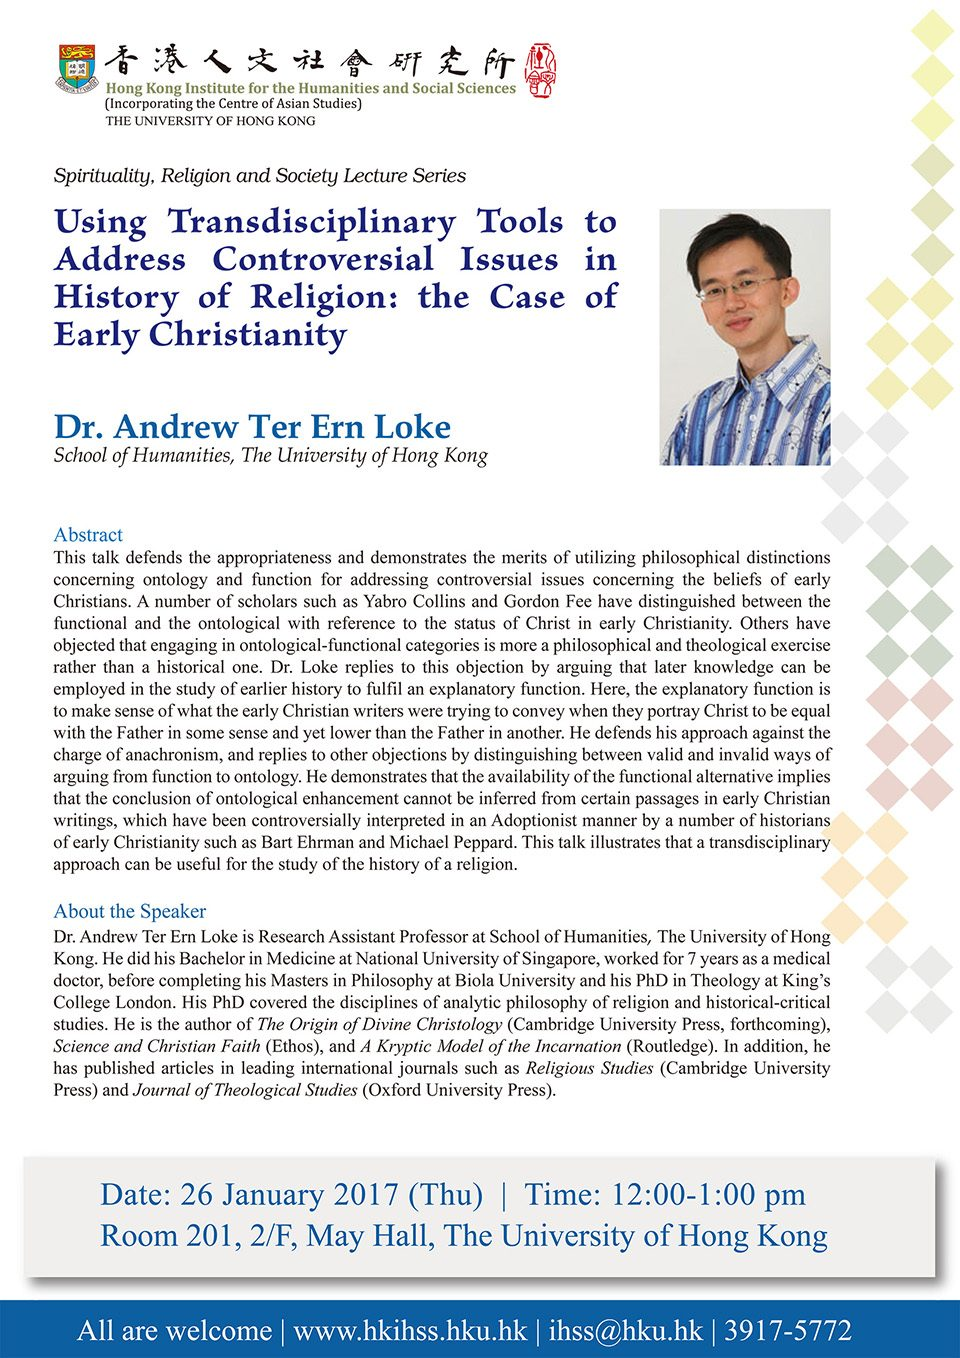 """Spirituality, Religion and Society Lecture Series """"Using Transdisciplinary Tools to Address Controversial Issues in History of Religion: the Case of Early Christianity"""" by Dr. Andrew Ter Ern Loke (January 26, 2017)"""